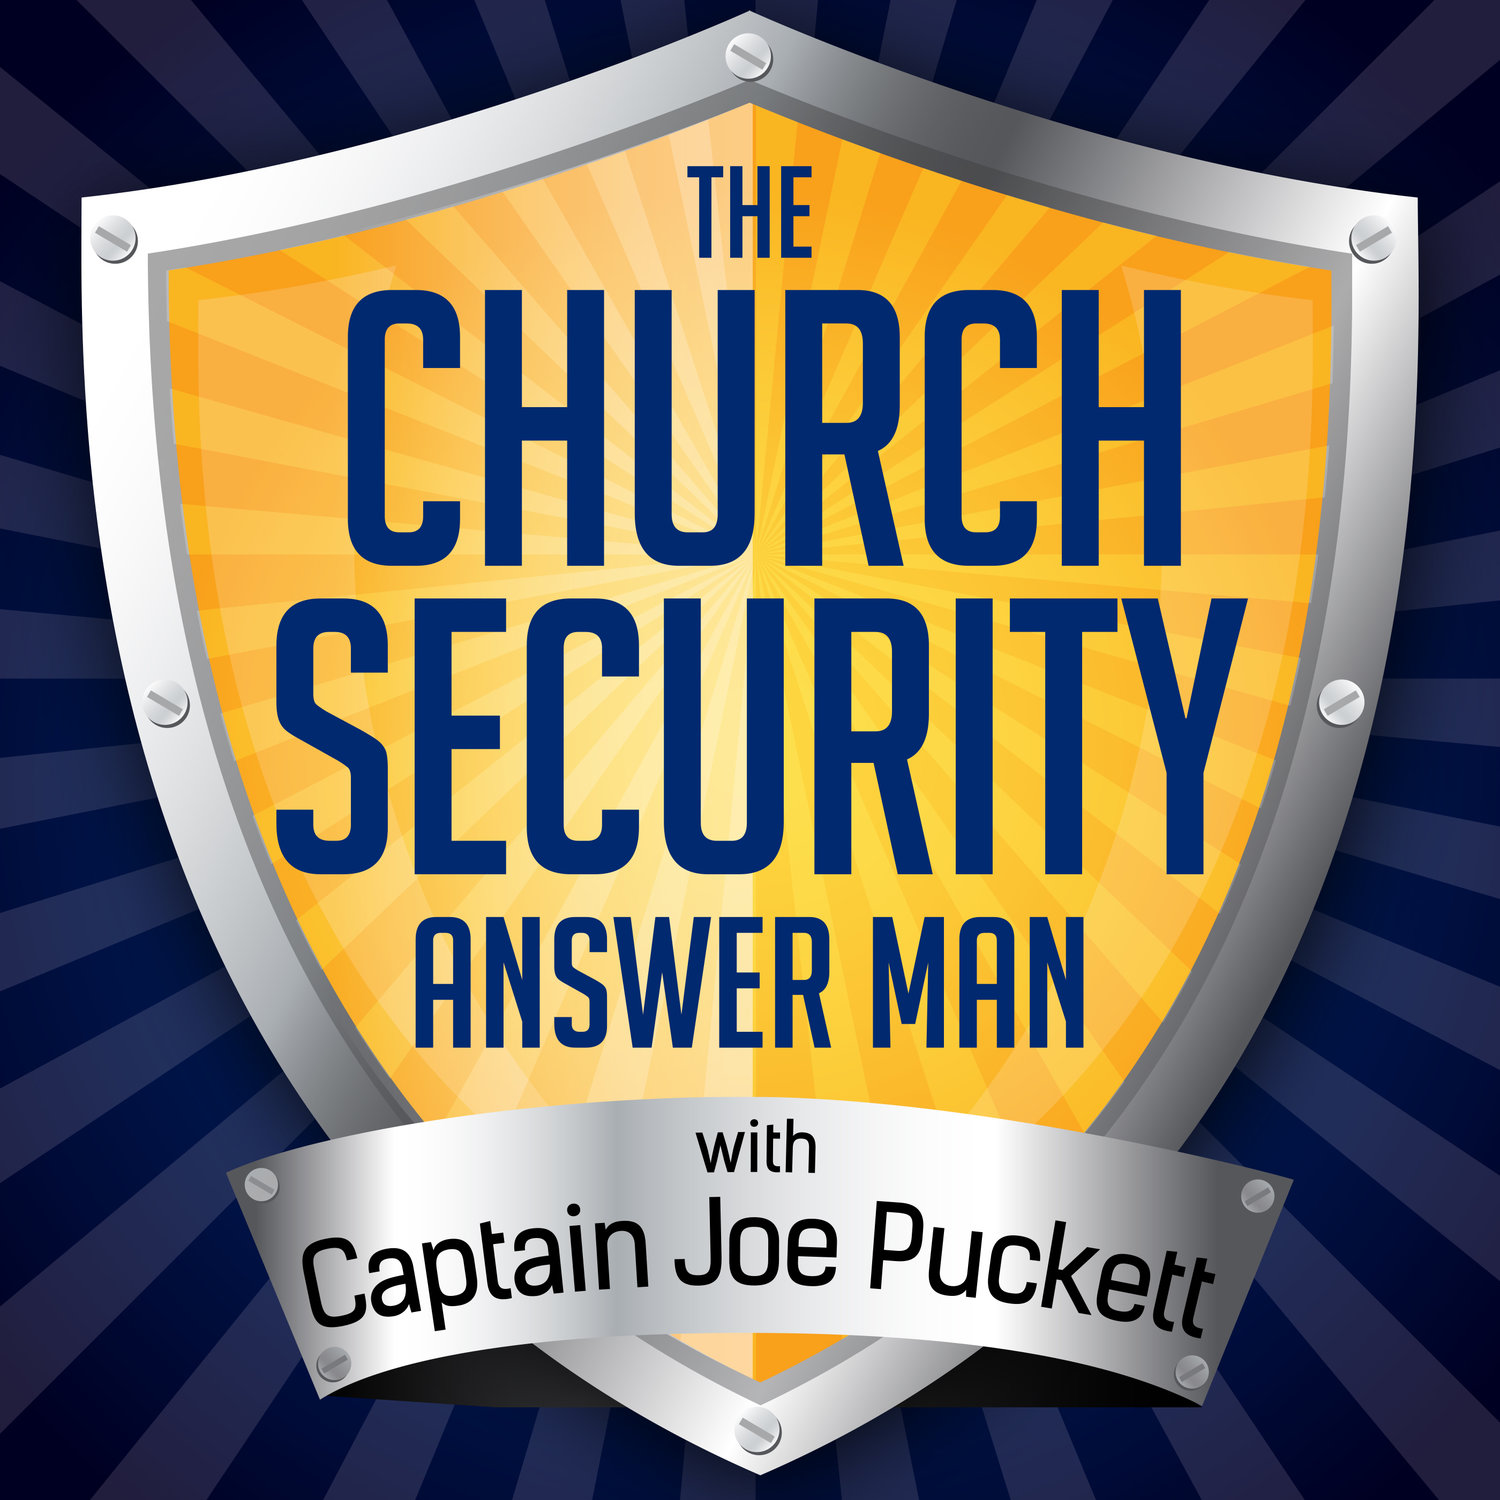 The Church Security Answer Man